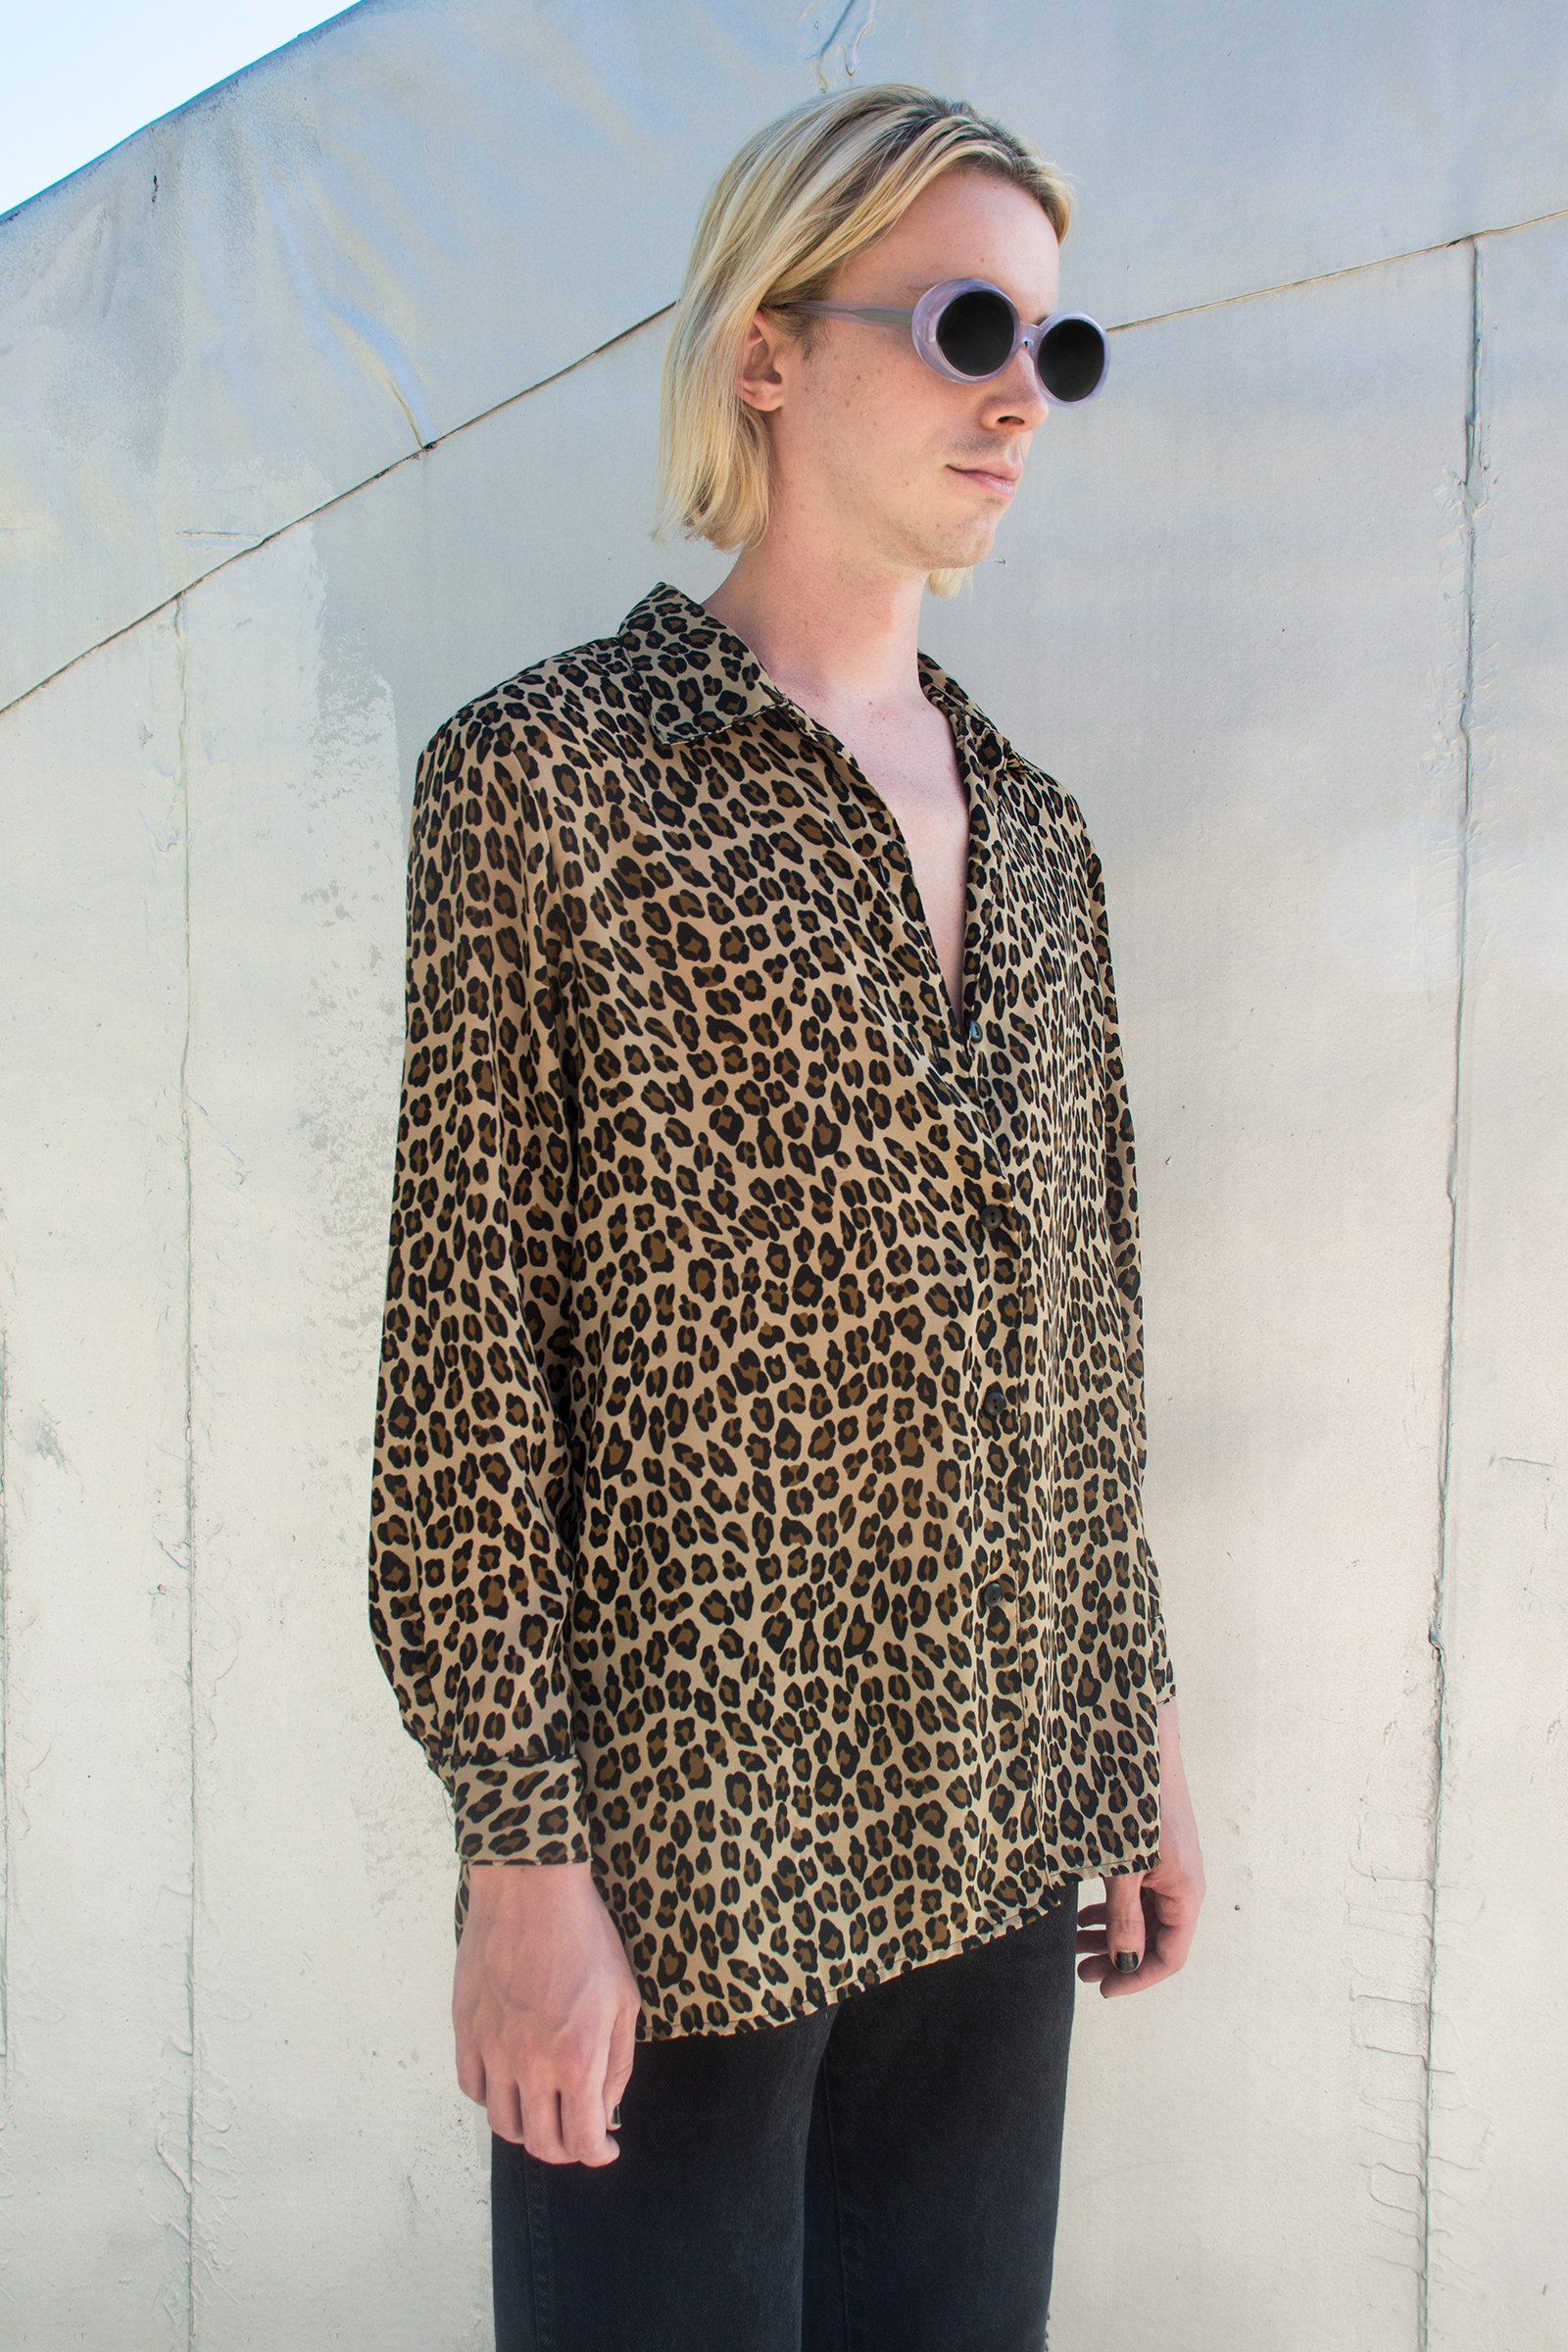 cheetah shirt with buttons ysl